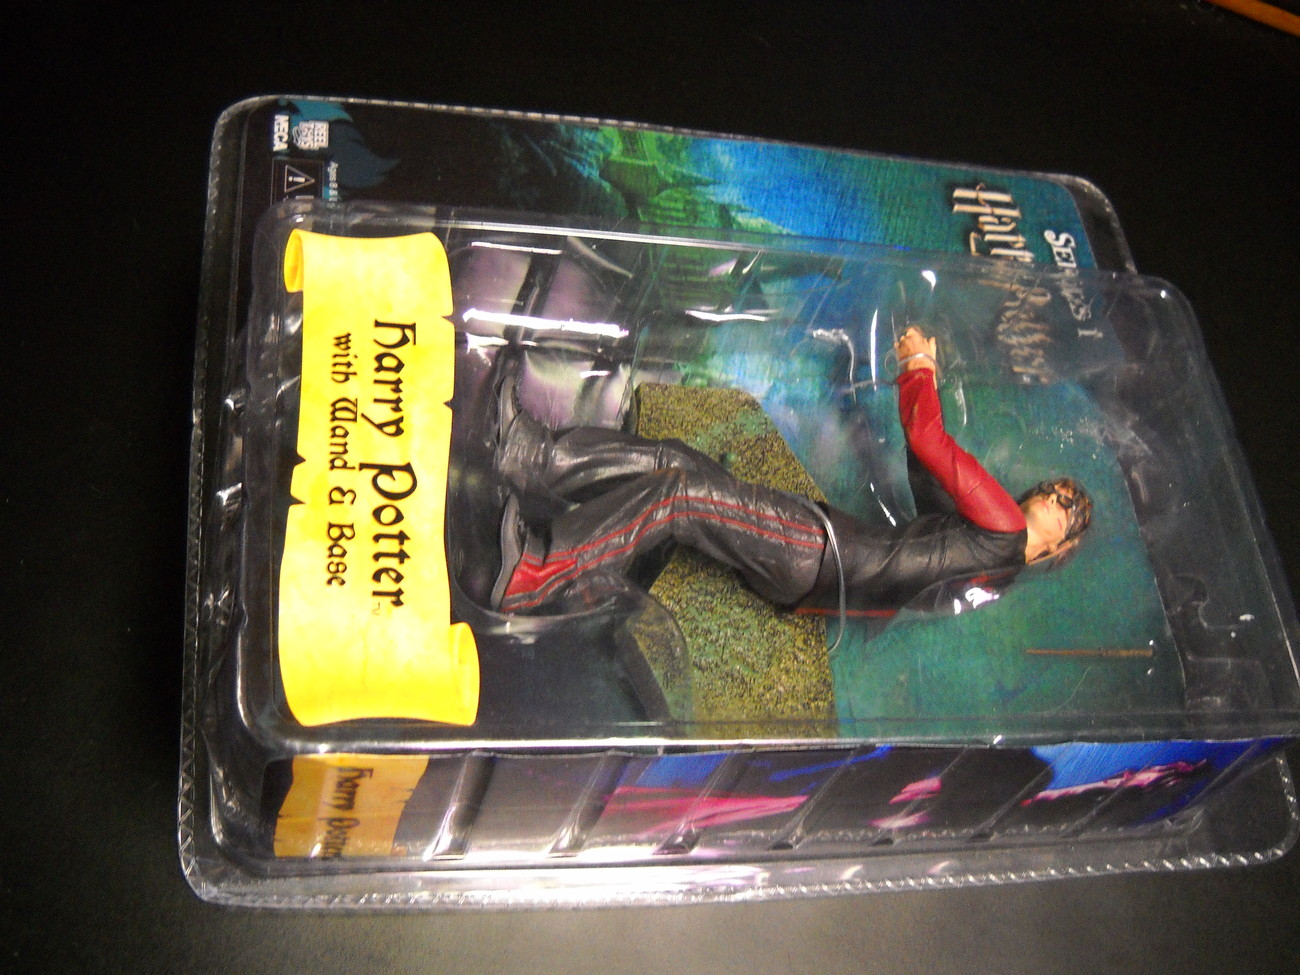 Toy harry potter action figure 6 inch border first series 01